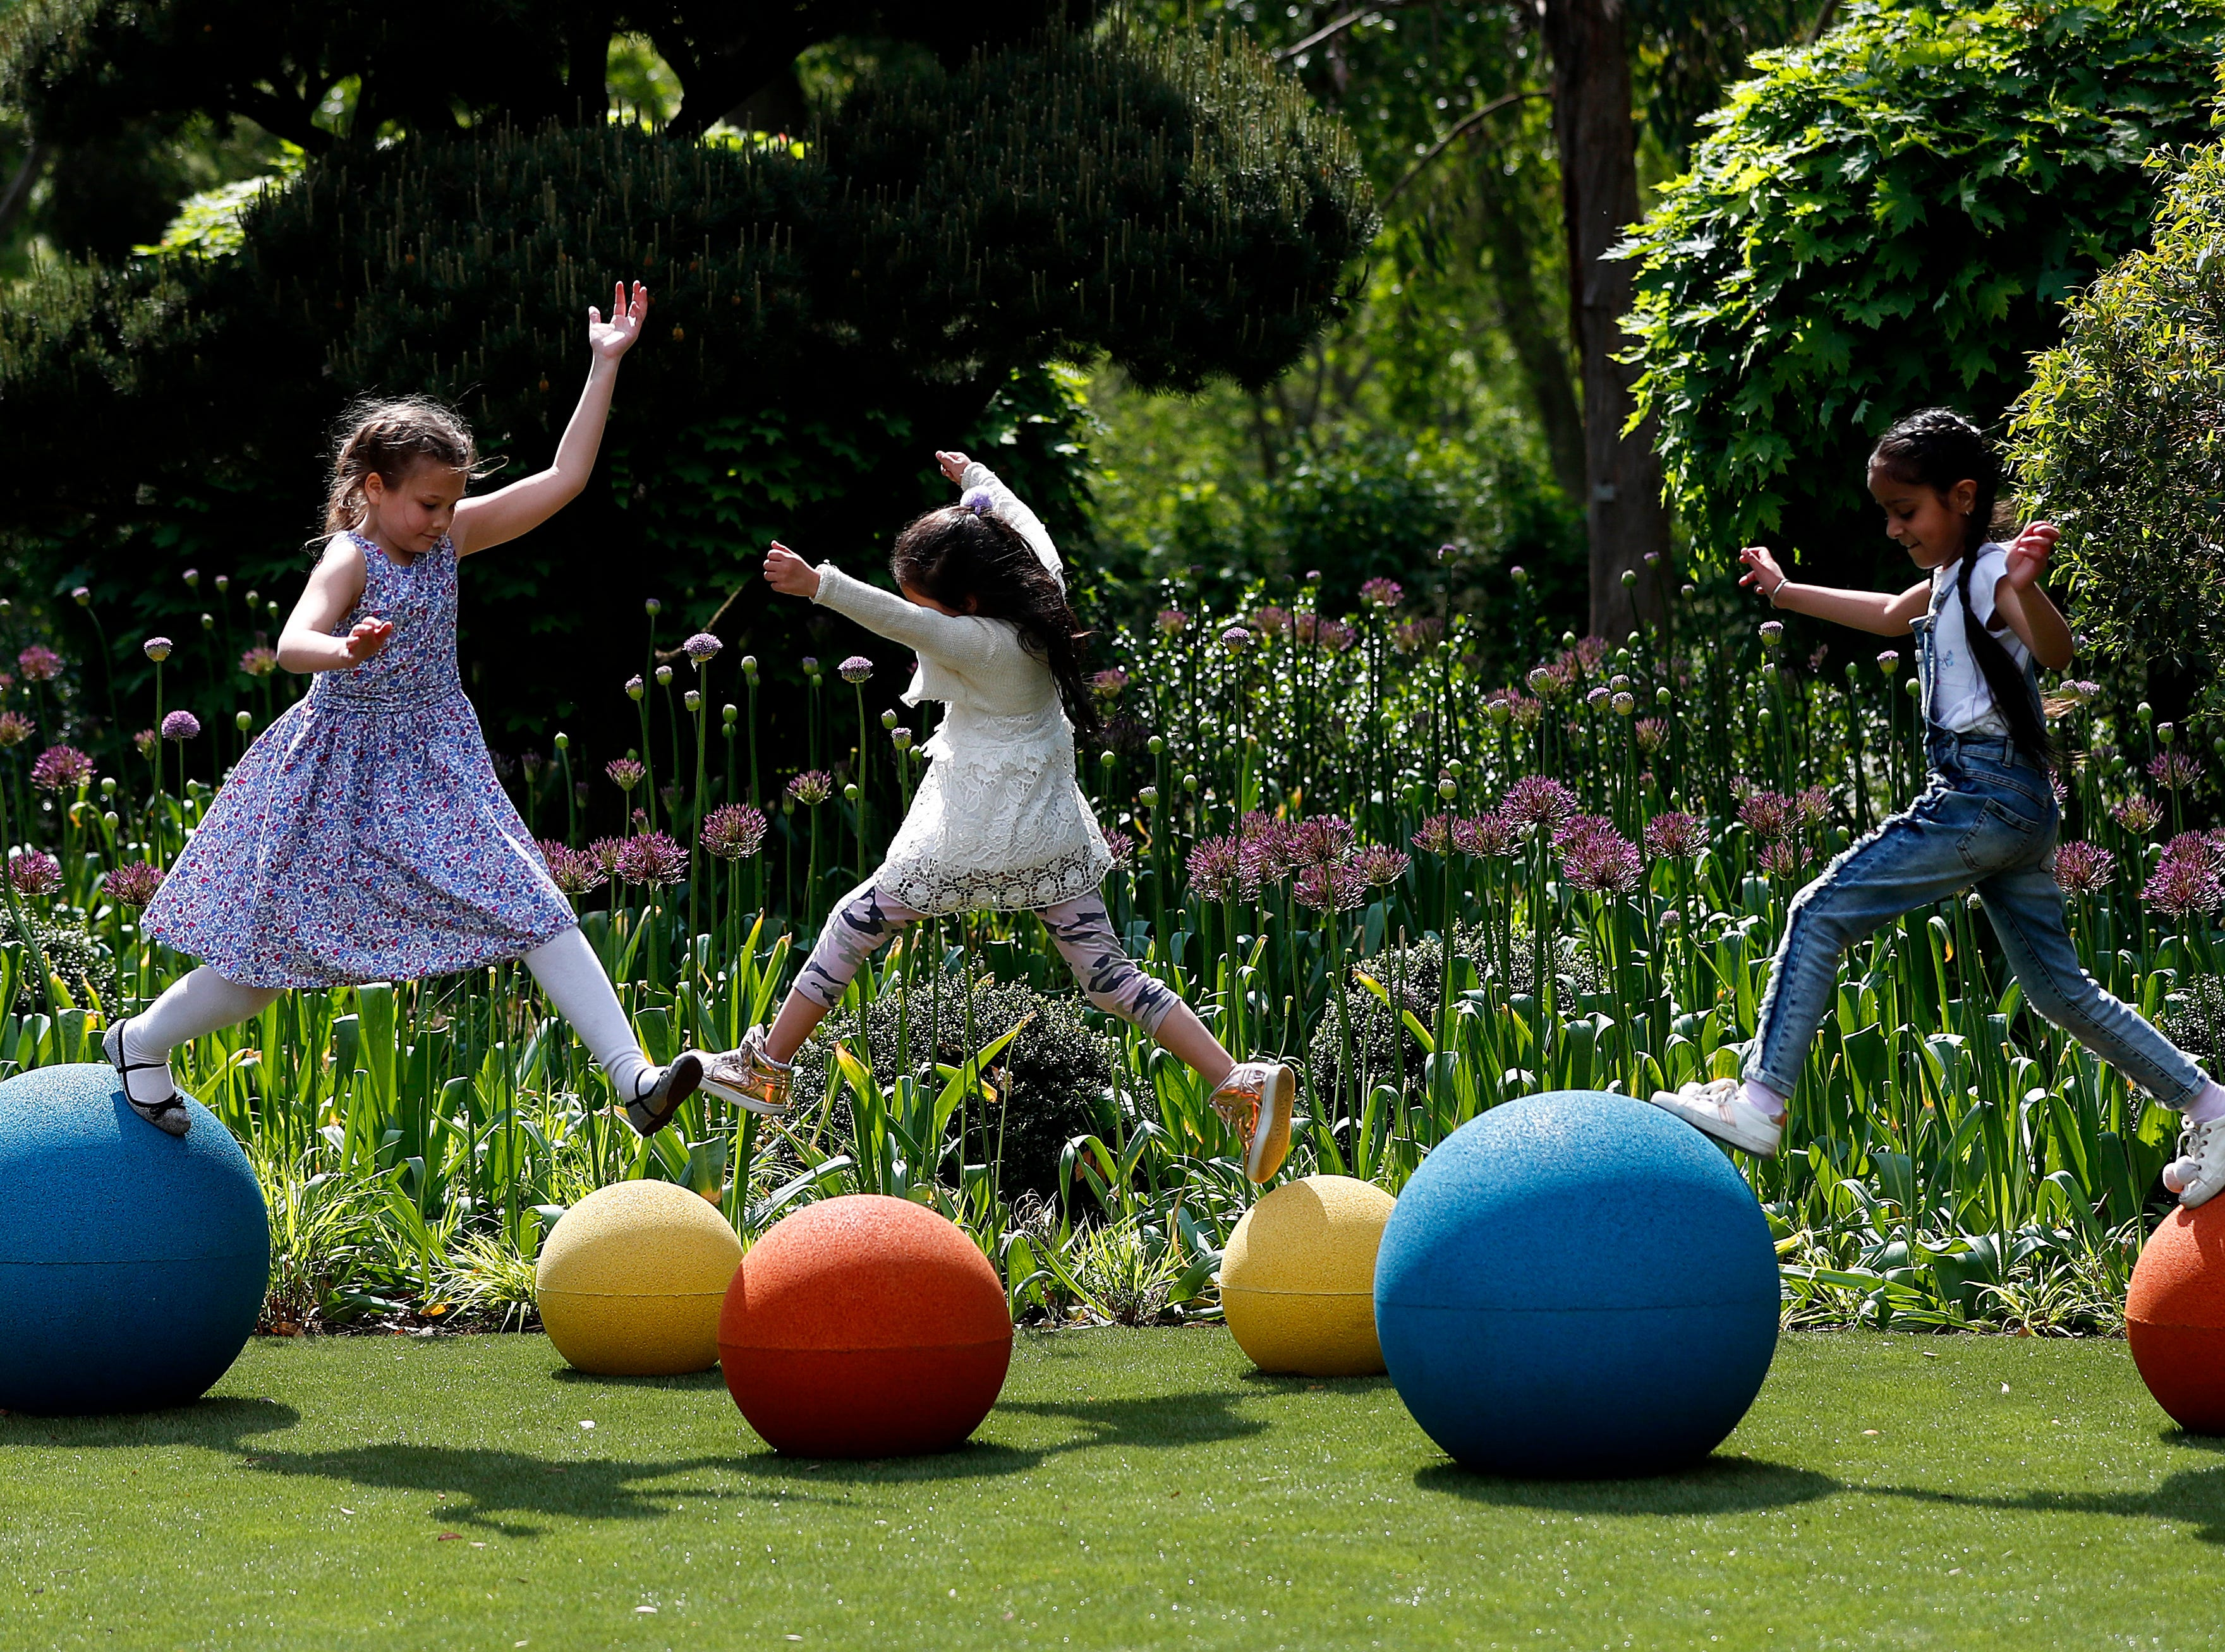 Children enjoy the new Children's Garden at Kew, designed around the elements that plants need to grow, at Kew Gardens in London, Thursday, May 16, 2019. The new garden covers the equivalent of nearly 40 tennis courts, and is for youngsters to explore and play in.